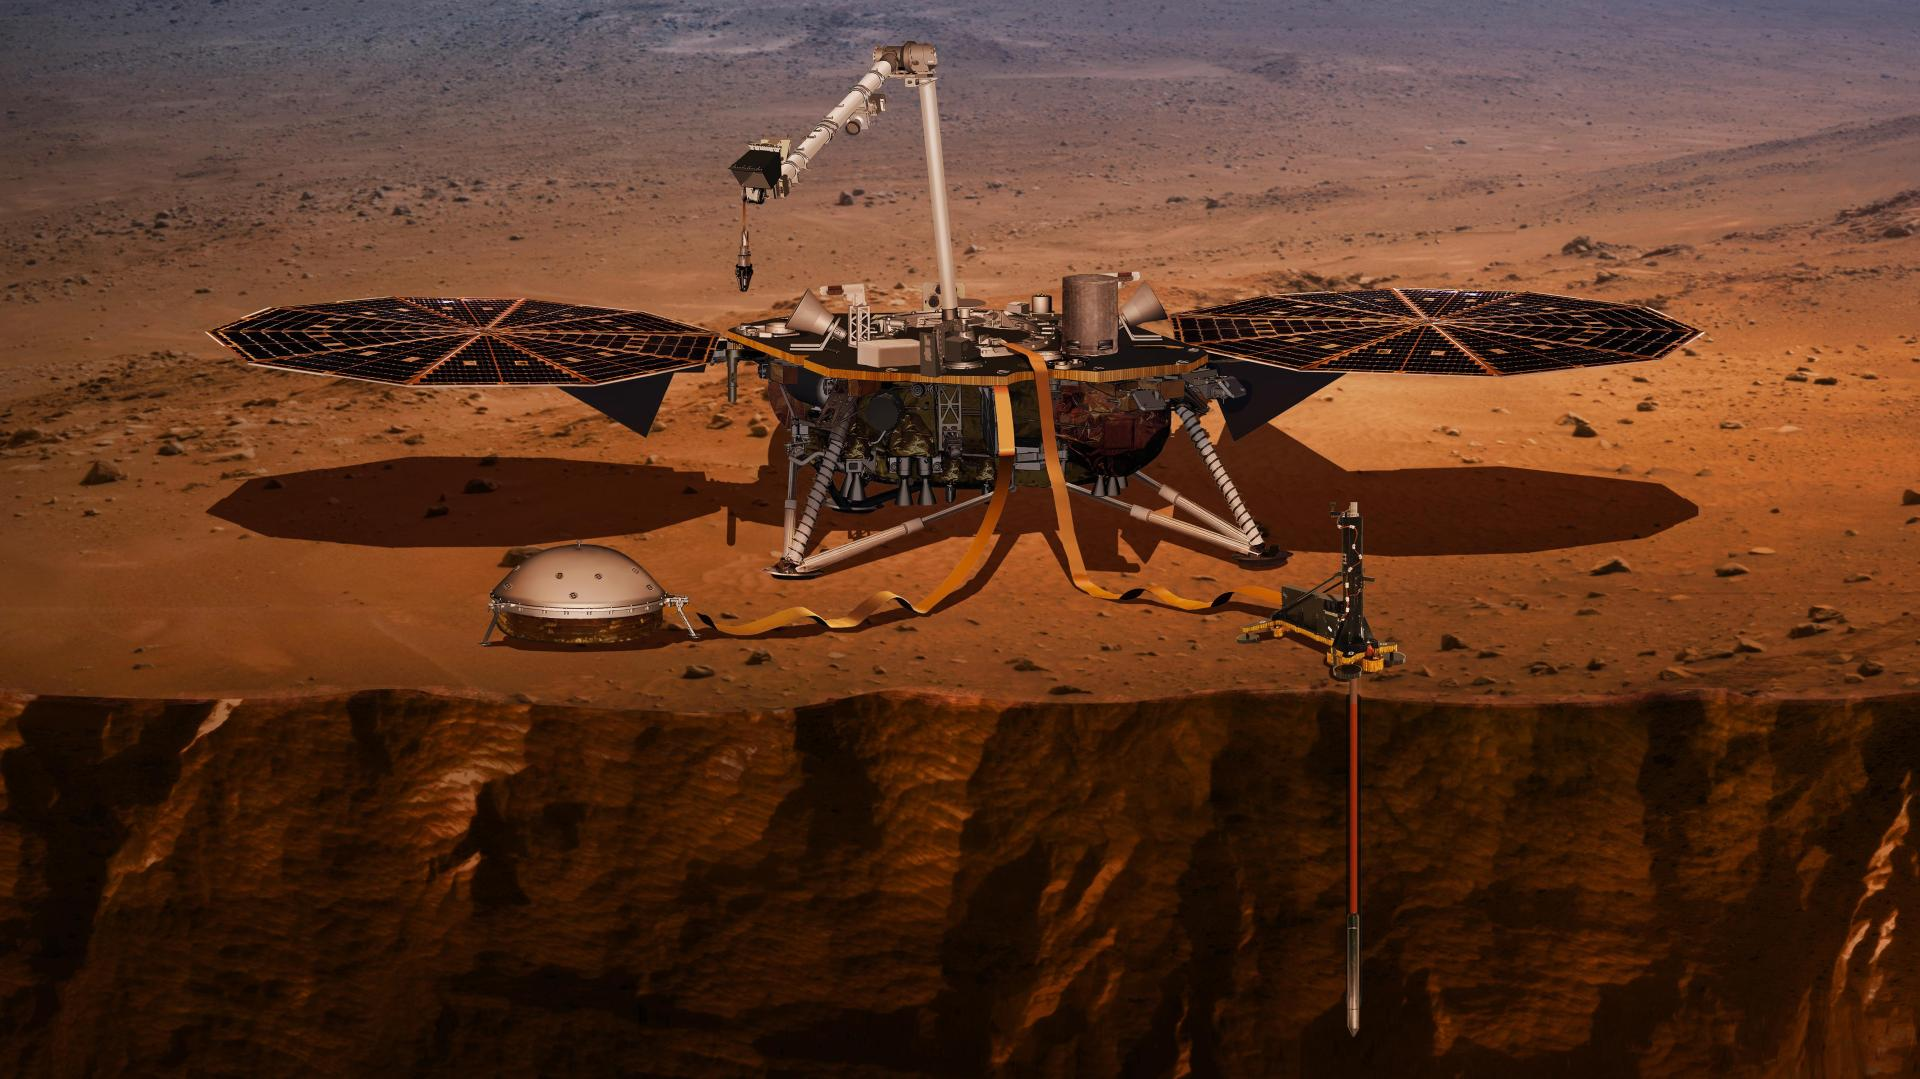 Artist's impression of the NASA InSight lander on the Martian surface